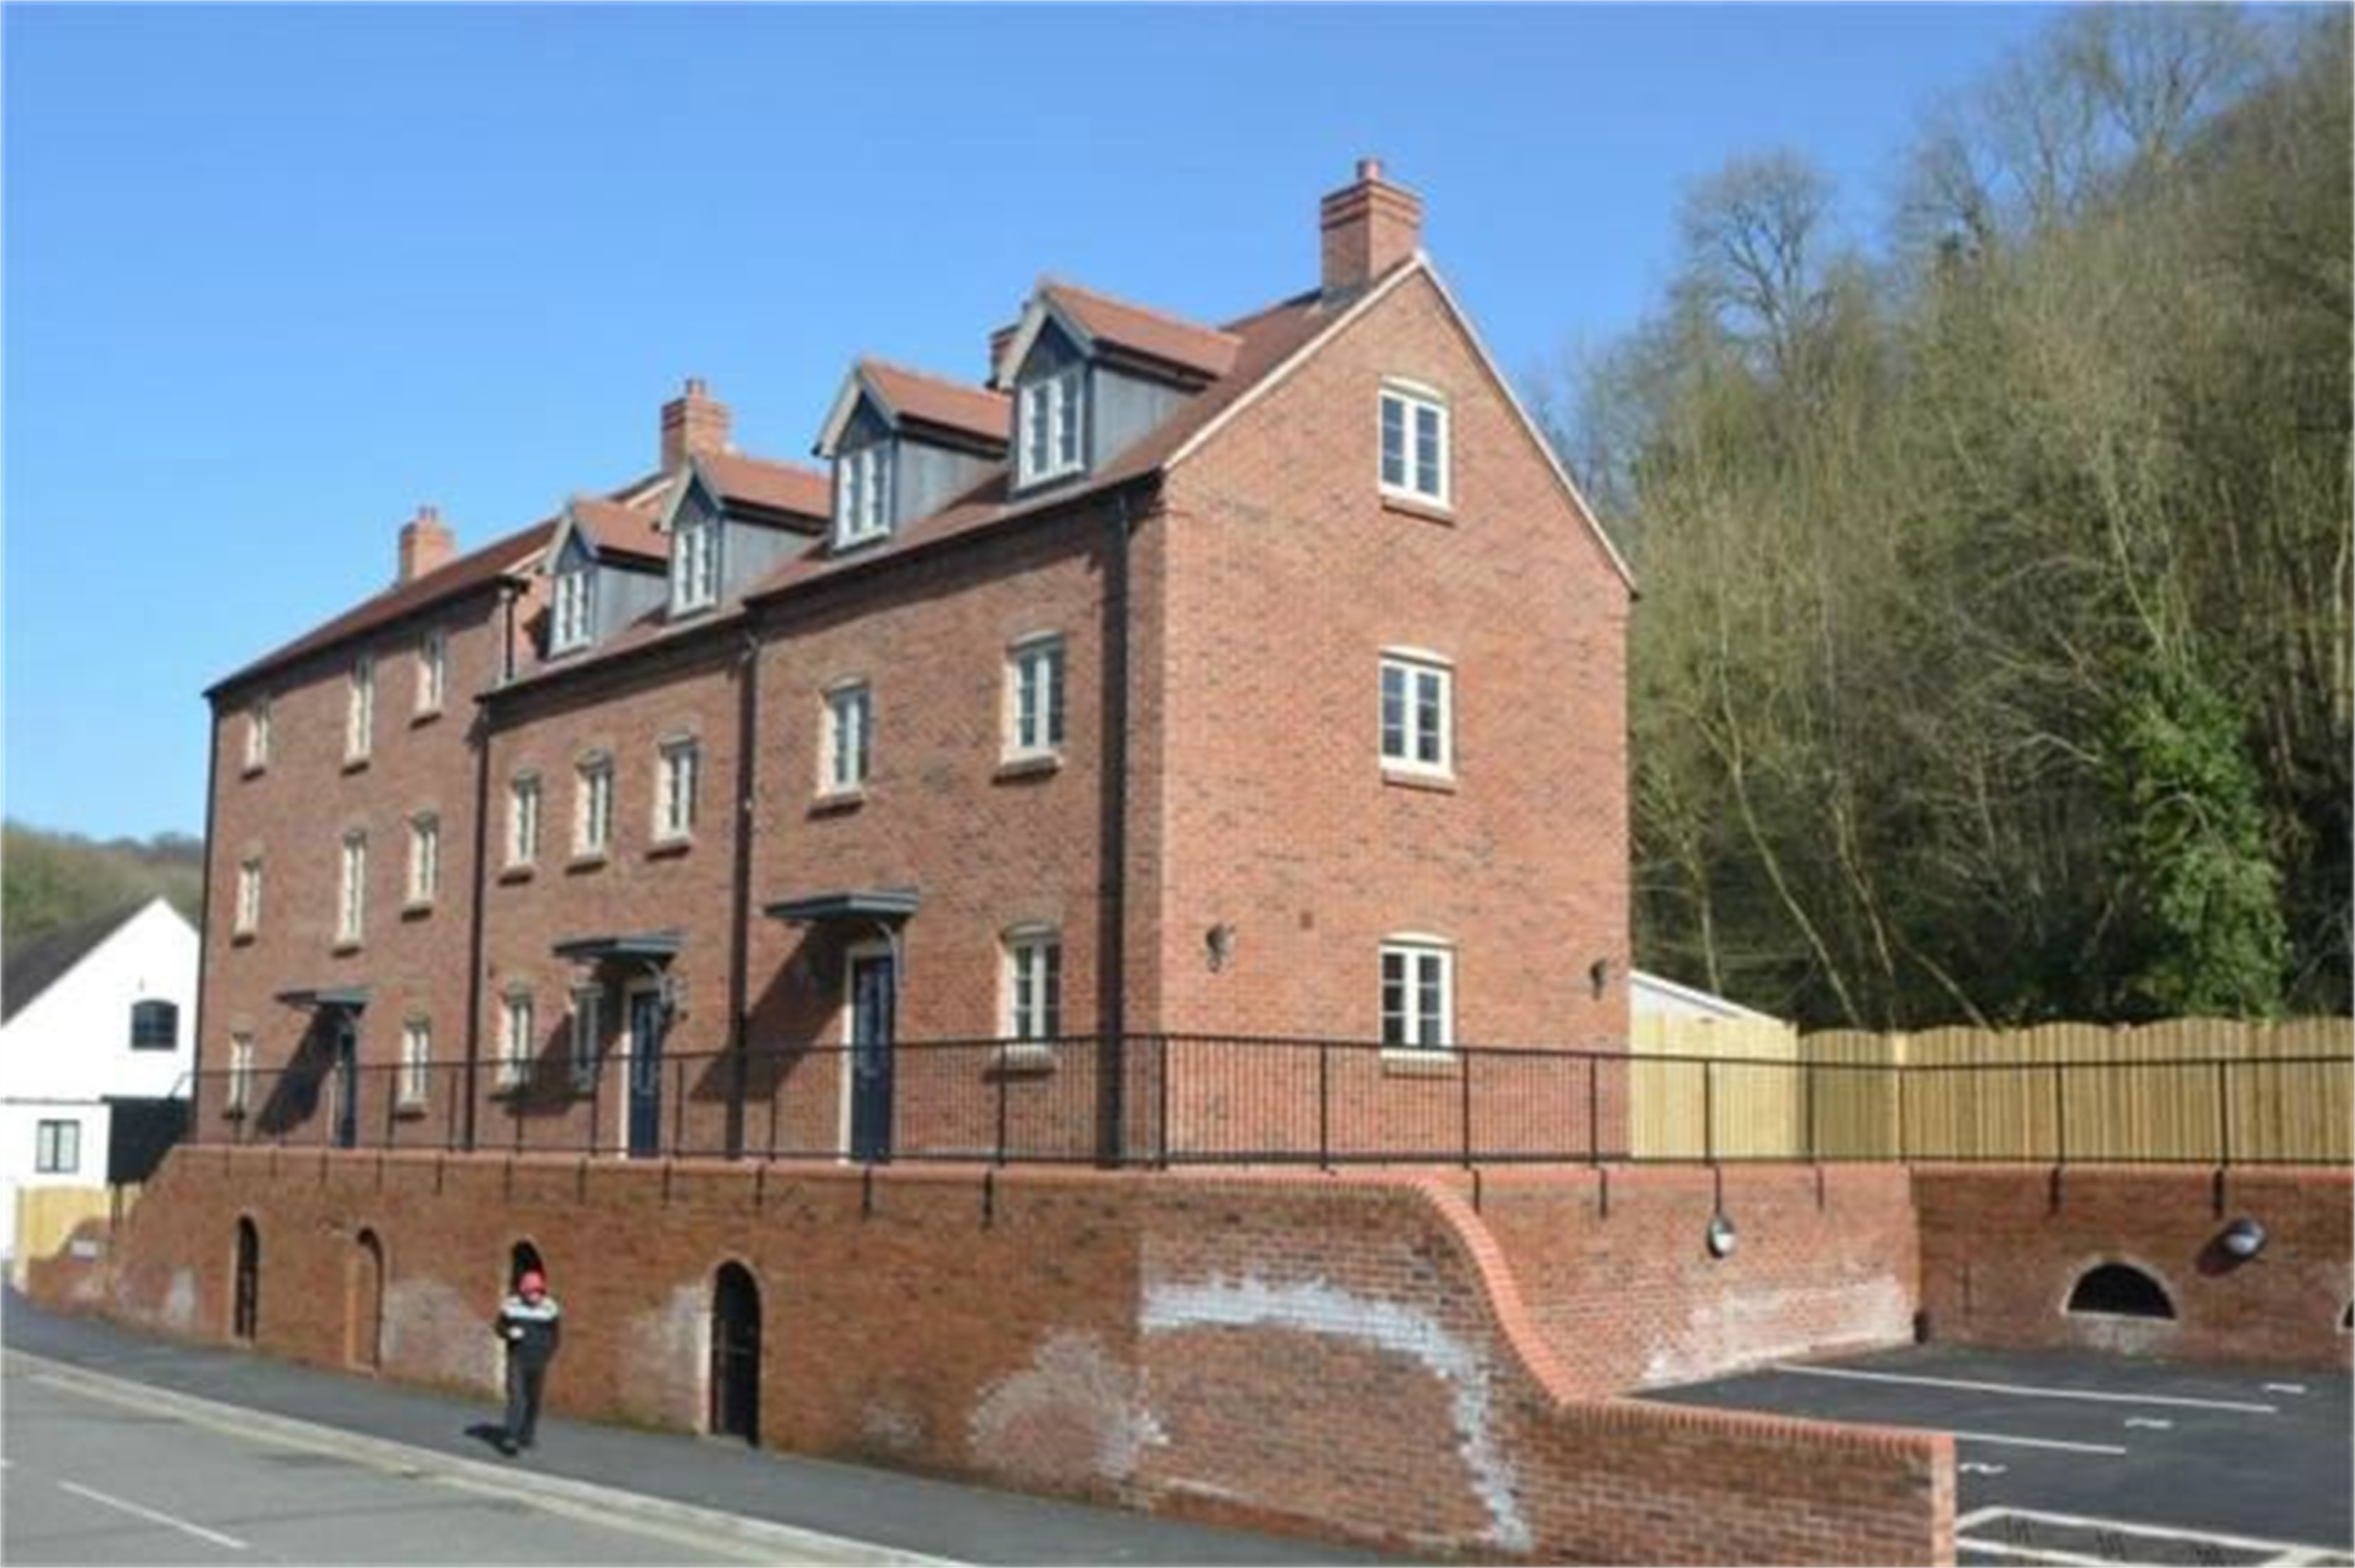 3 Bedrooms End Of Terrace House for sale in 3 Foundry Mews, Dale End, Coalbrookdale, Telford, TF8